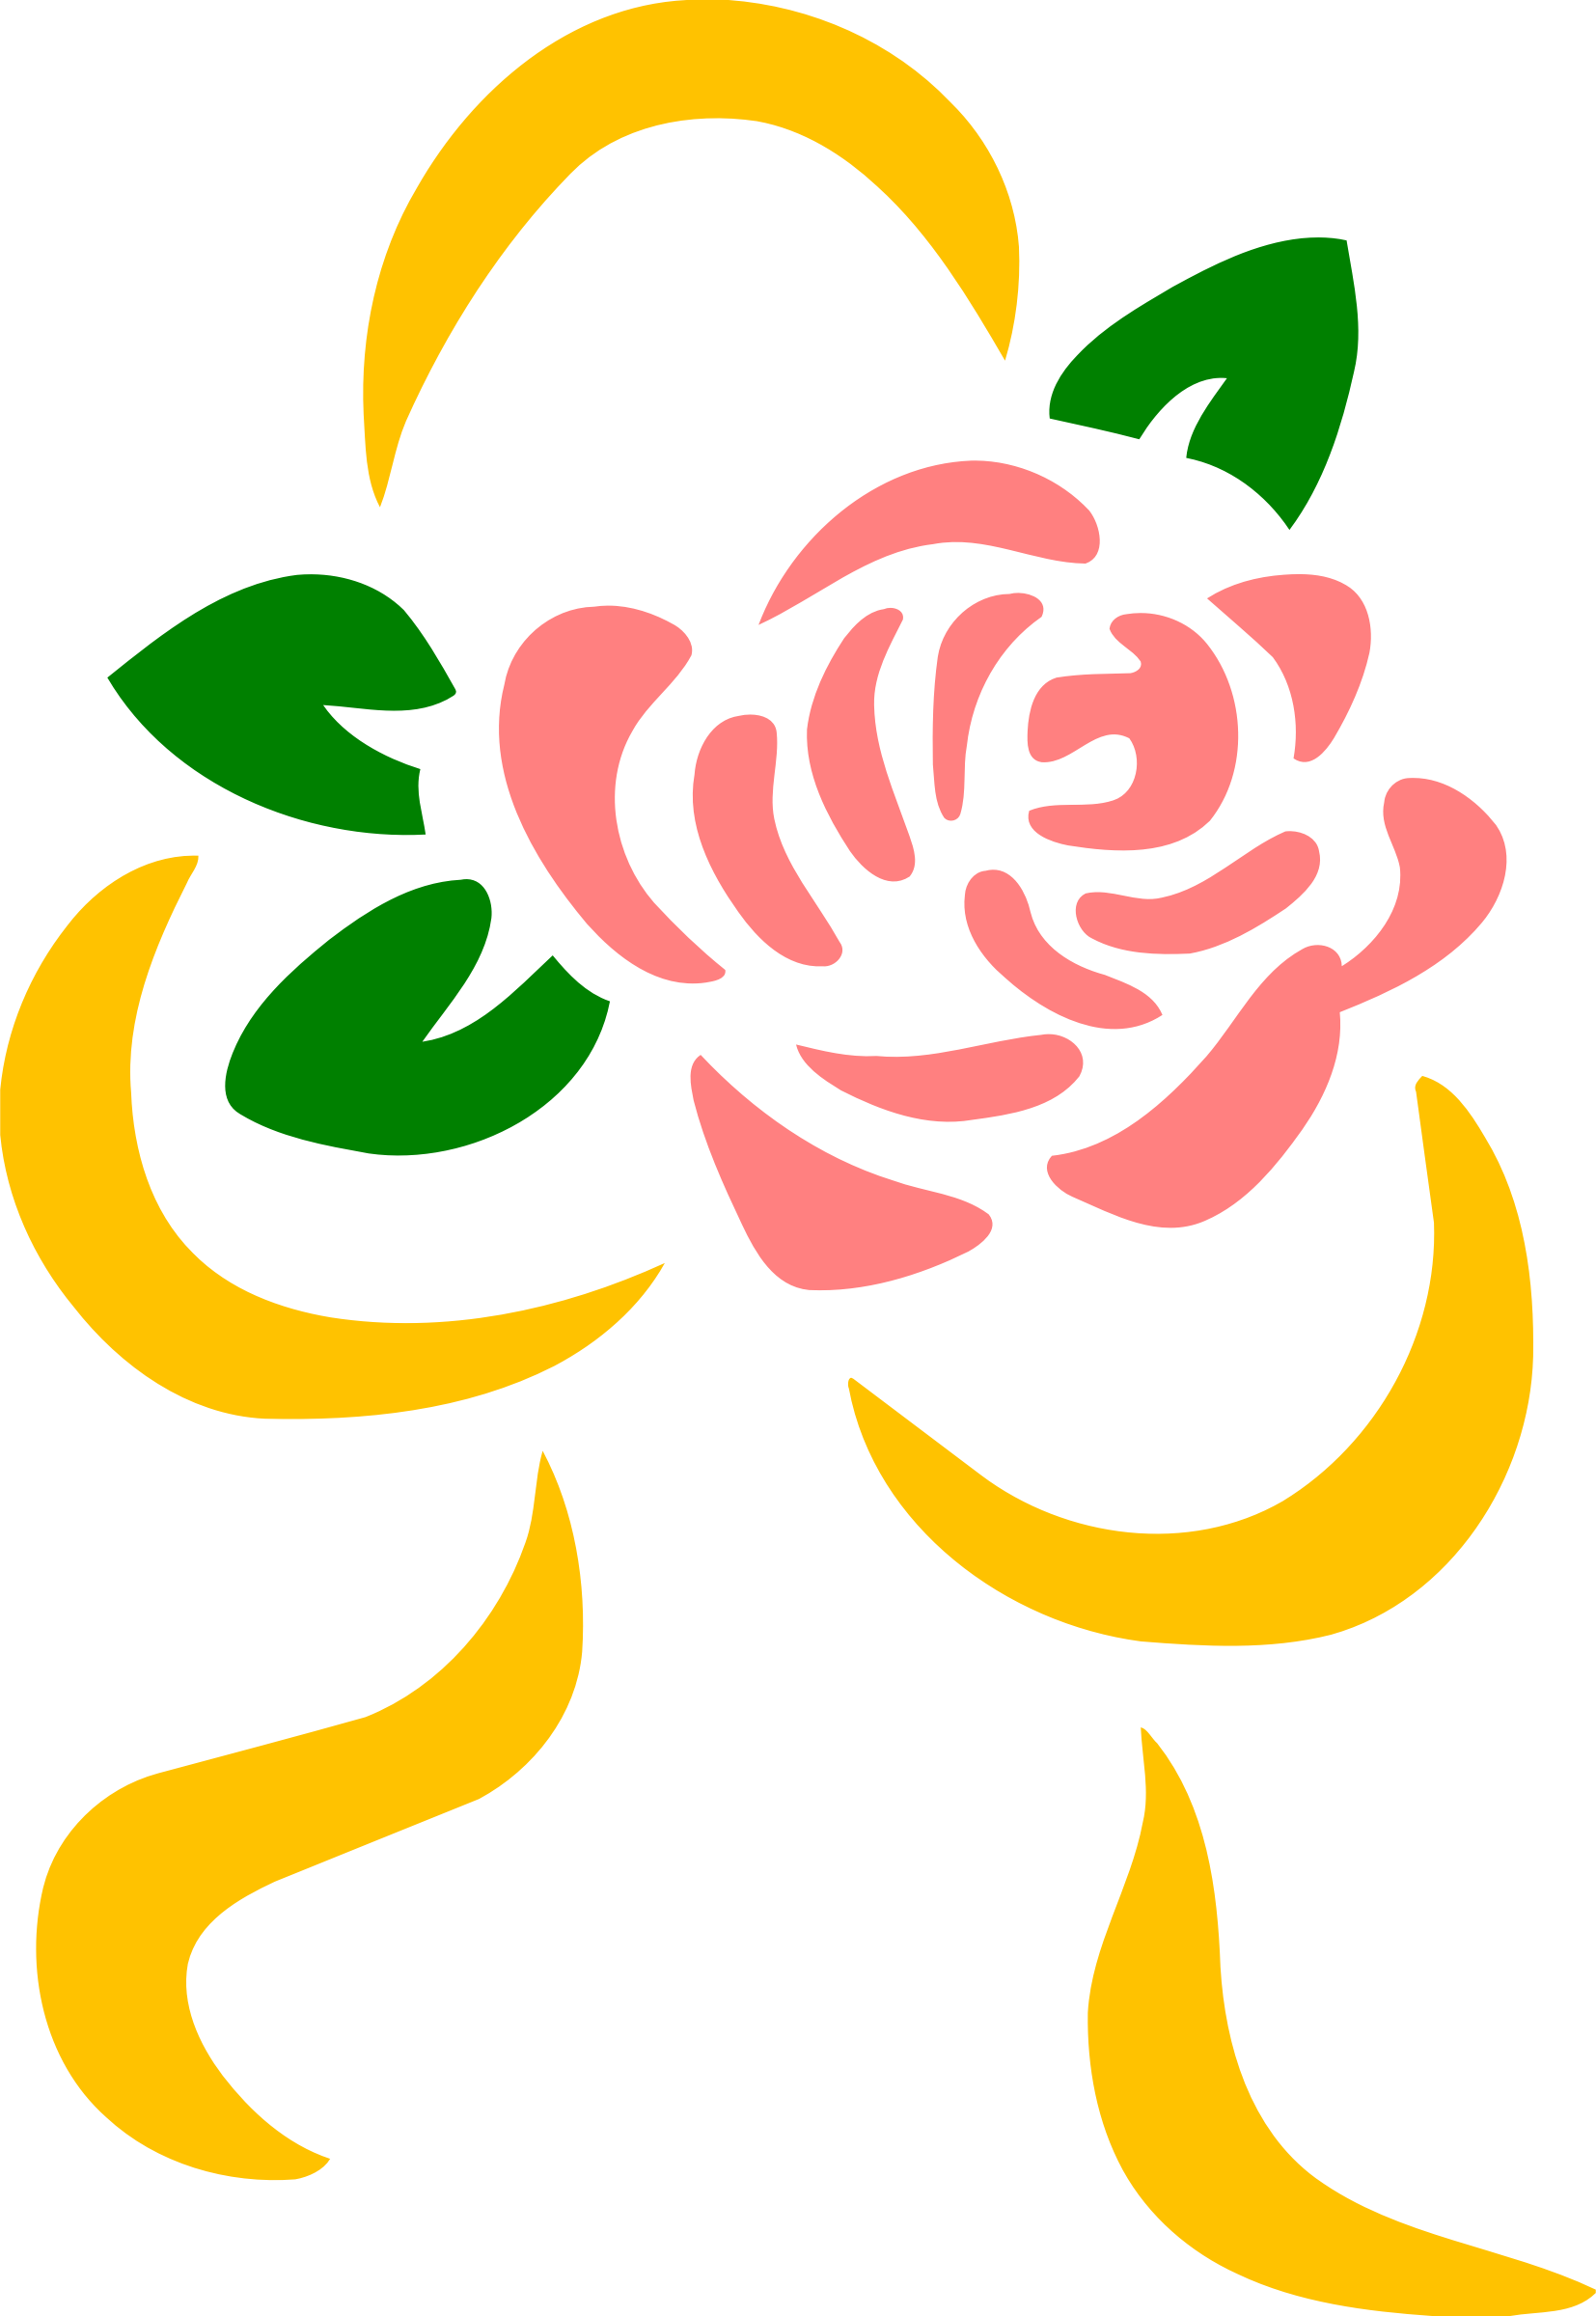 Stylised rose 5 (colour) by Firkin